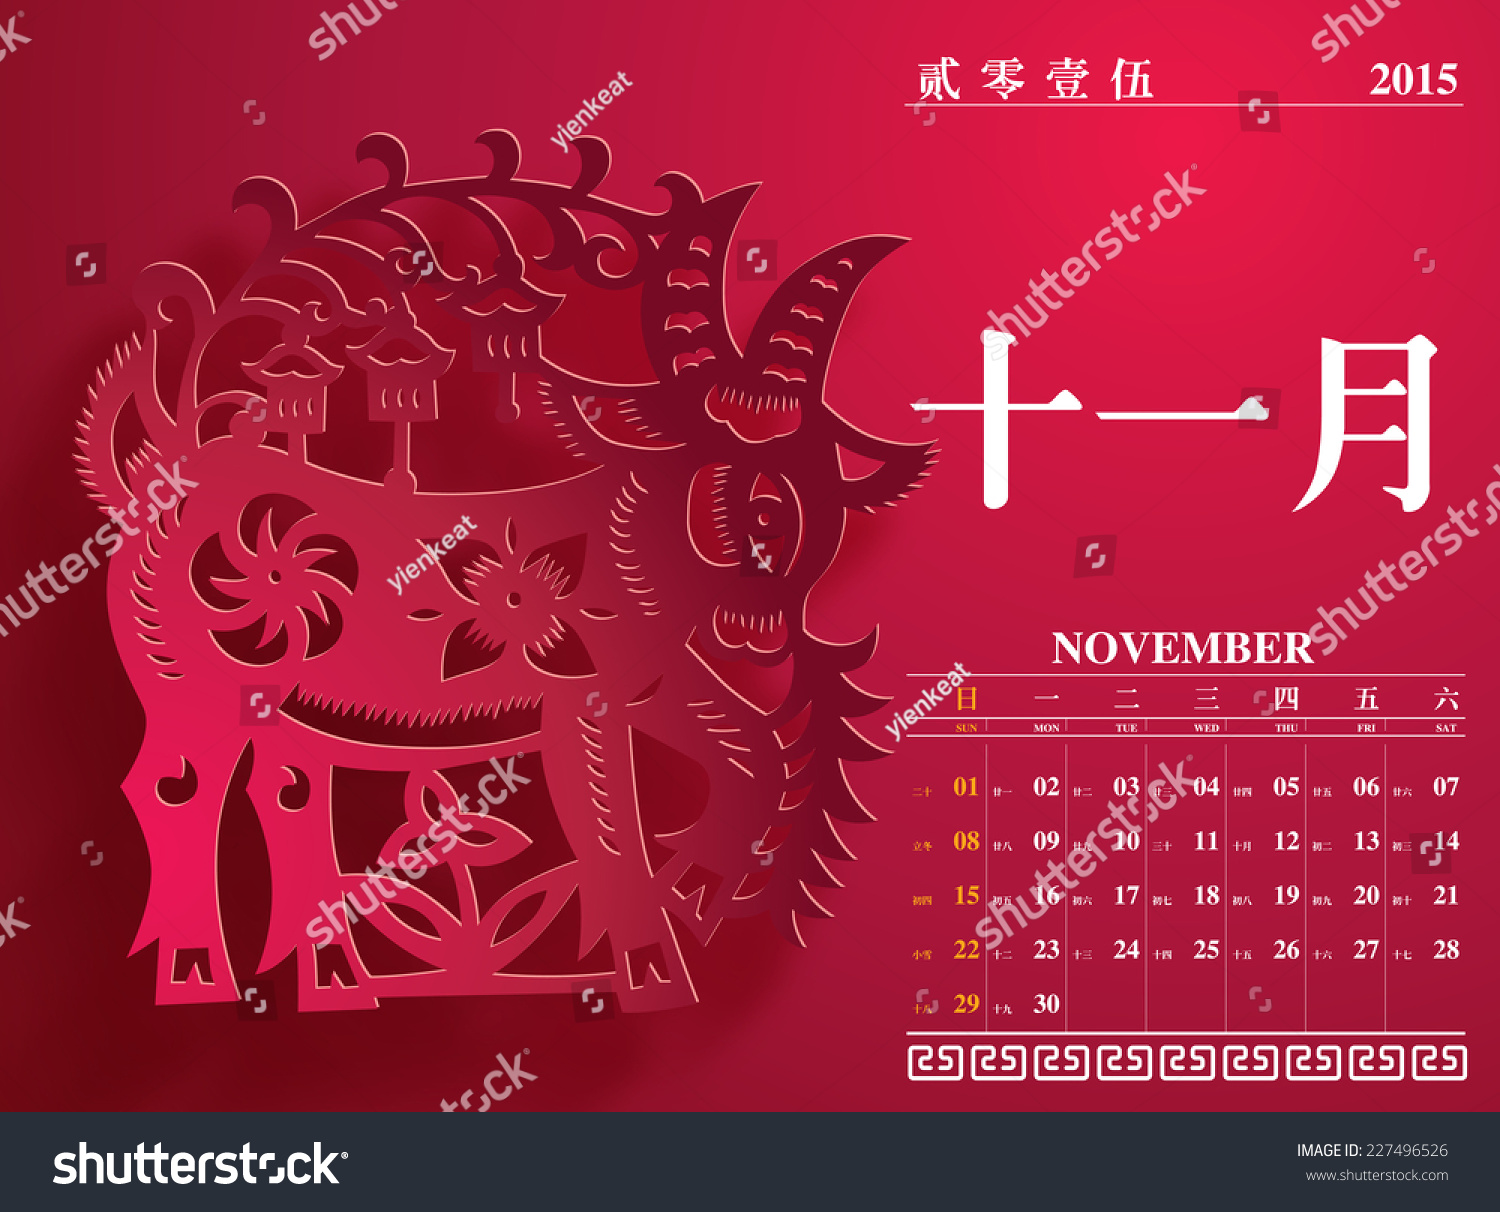 vector chinese calendar 2015  the year of the goat  translation  november 2015